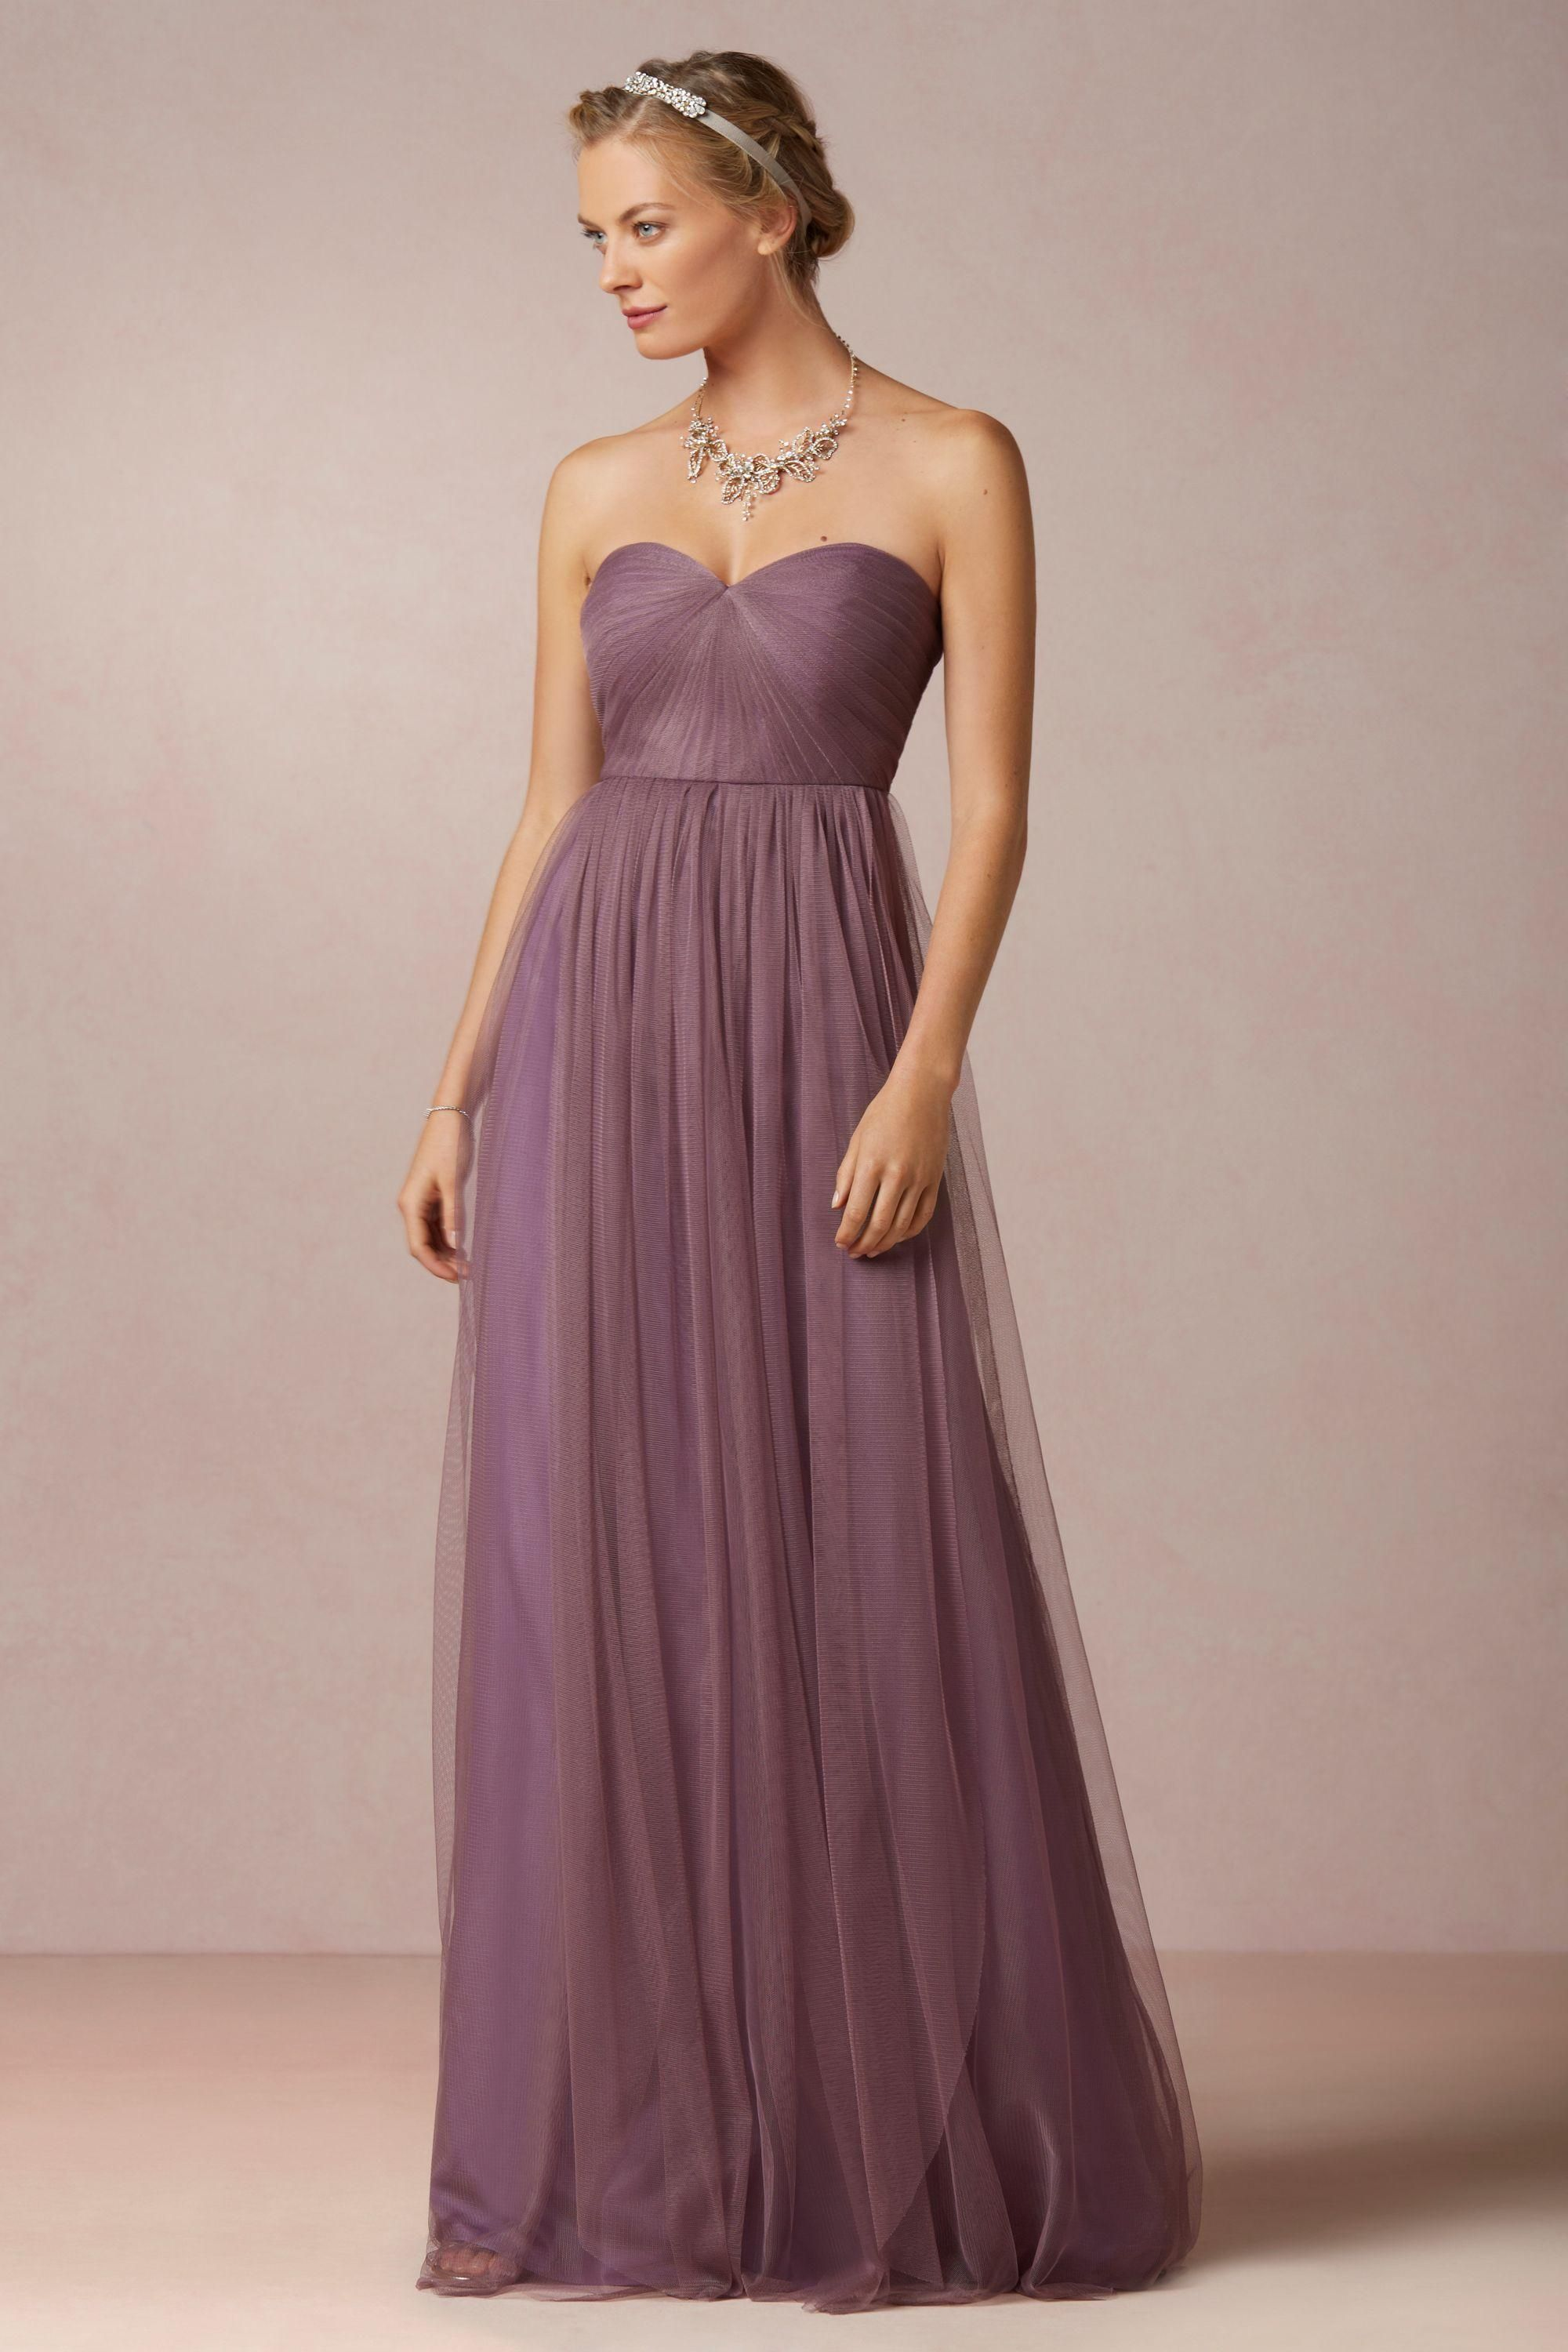 Pin by nia ray on my style pinterest purple gowns gowns and wedding